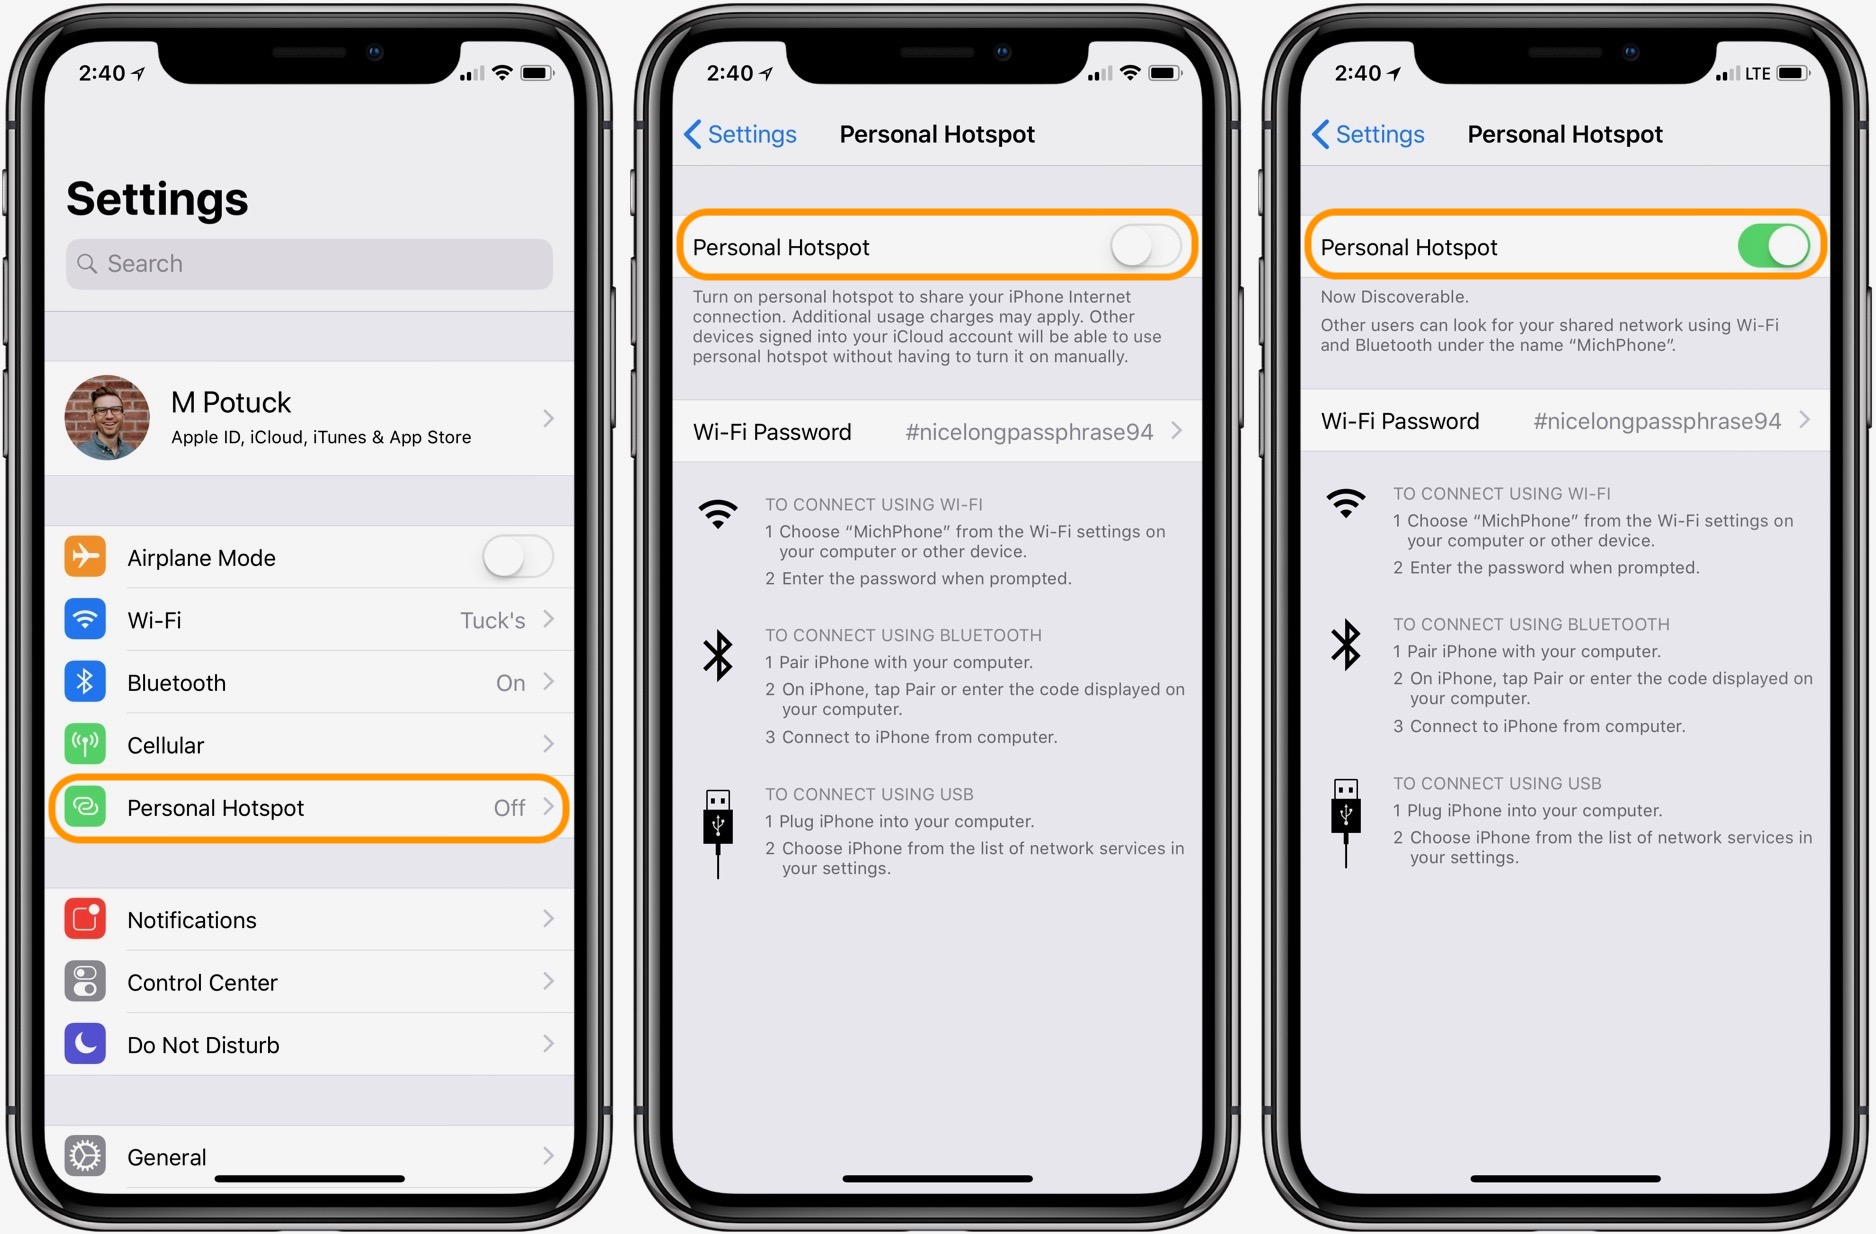 How do i use my personal hotspot on my iphone 6s